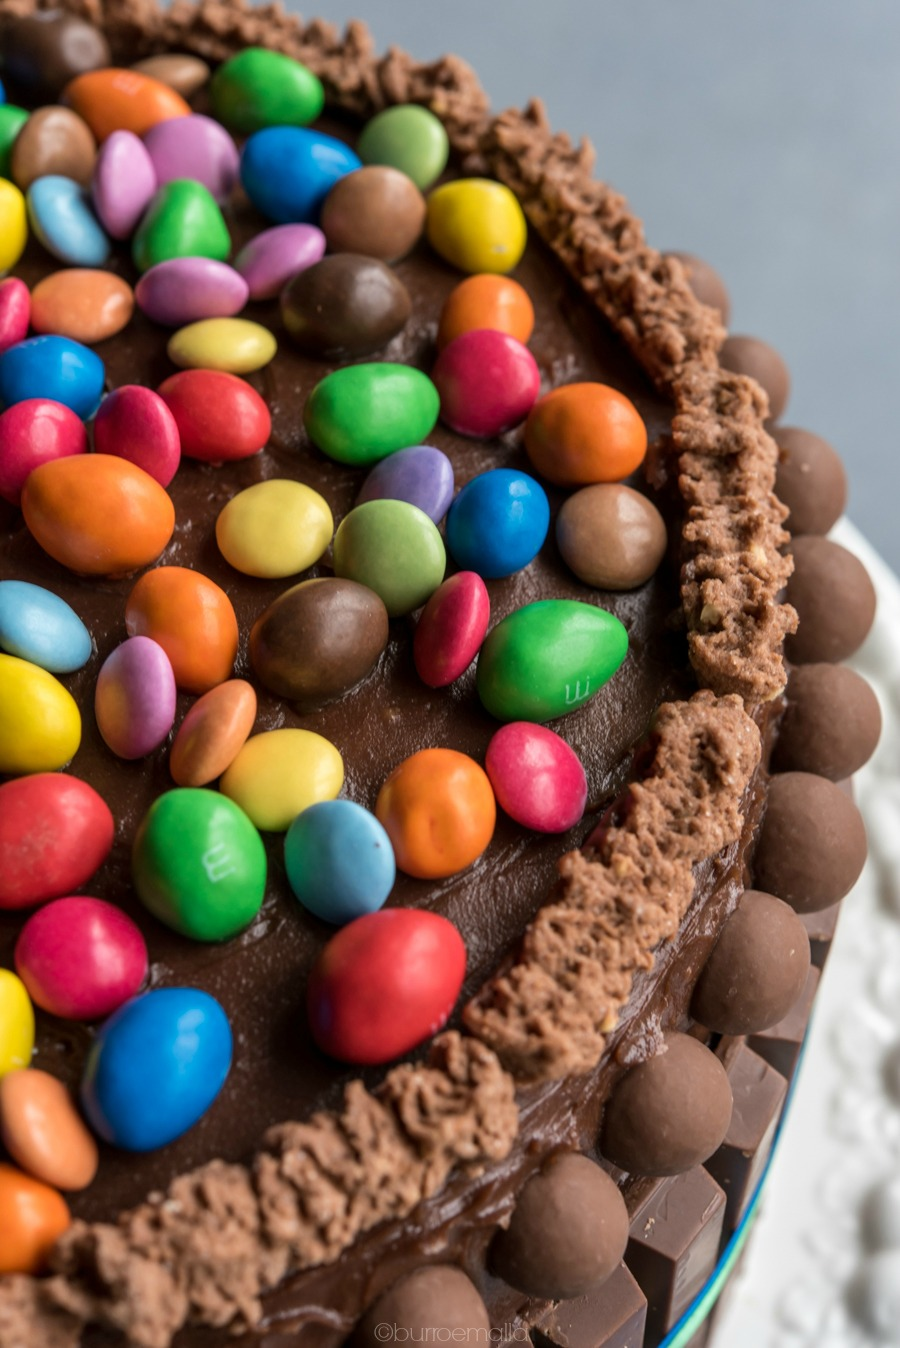 torta kit kat colorata con m&m e smarties